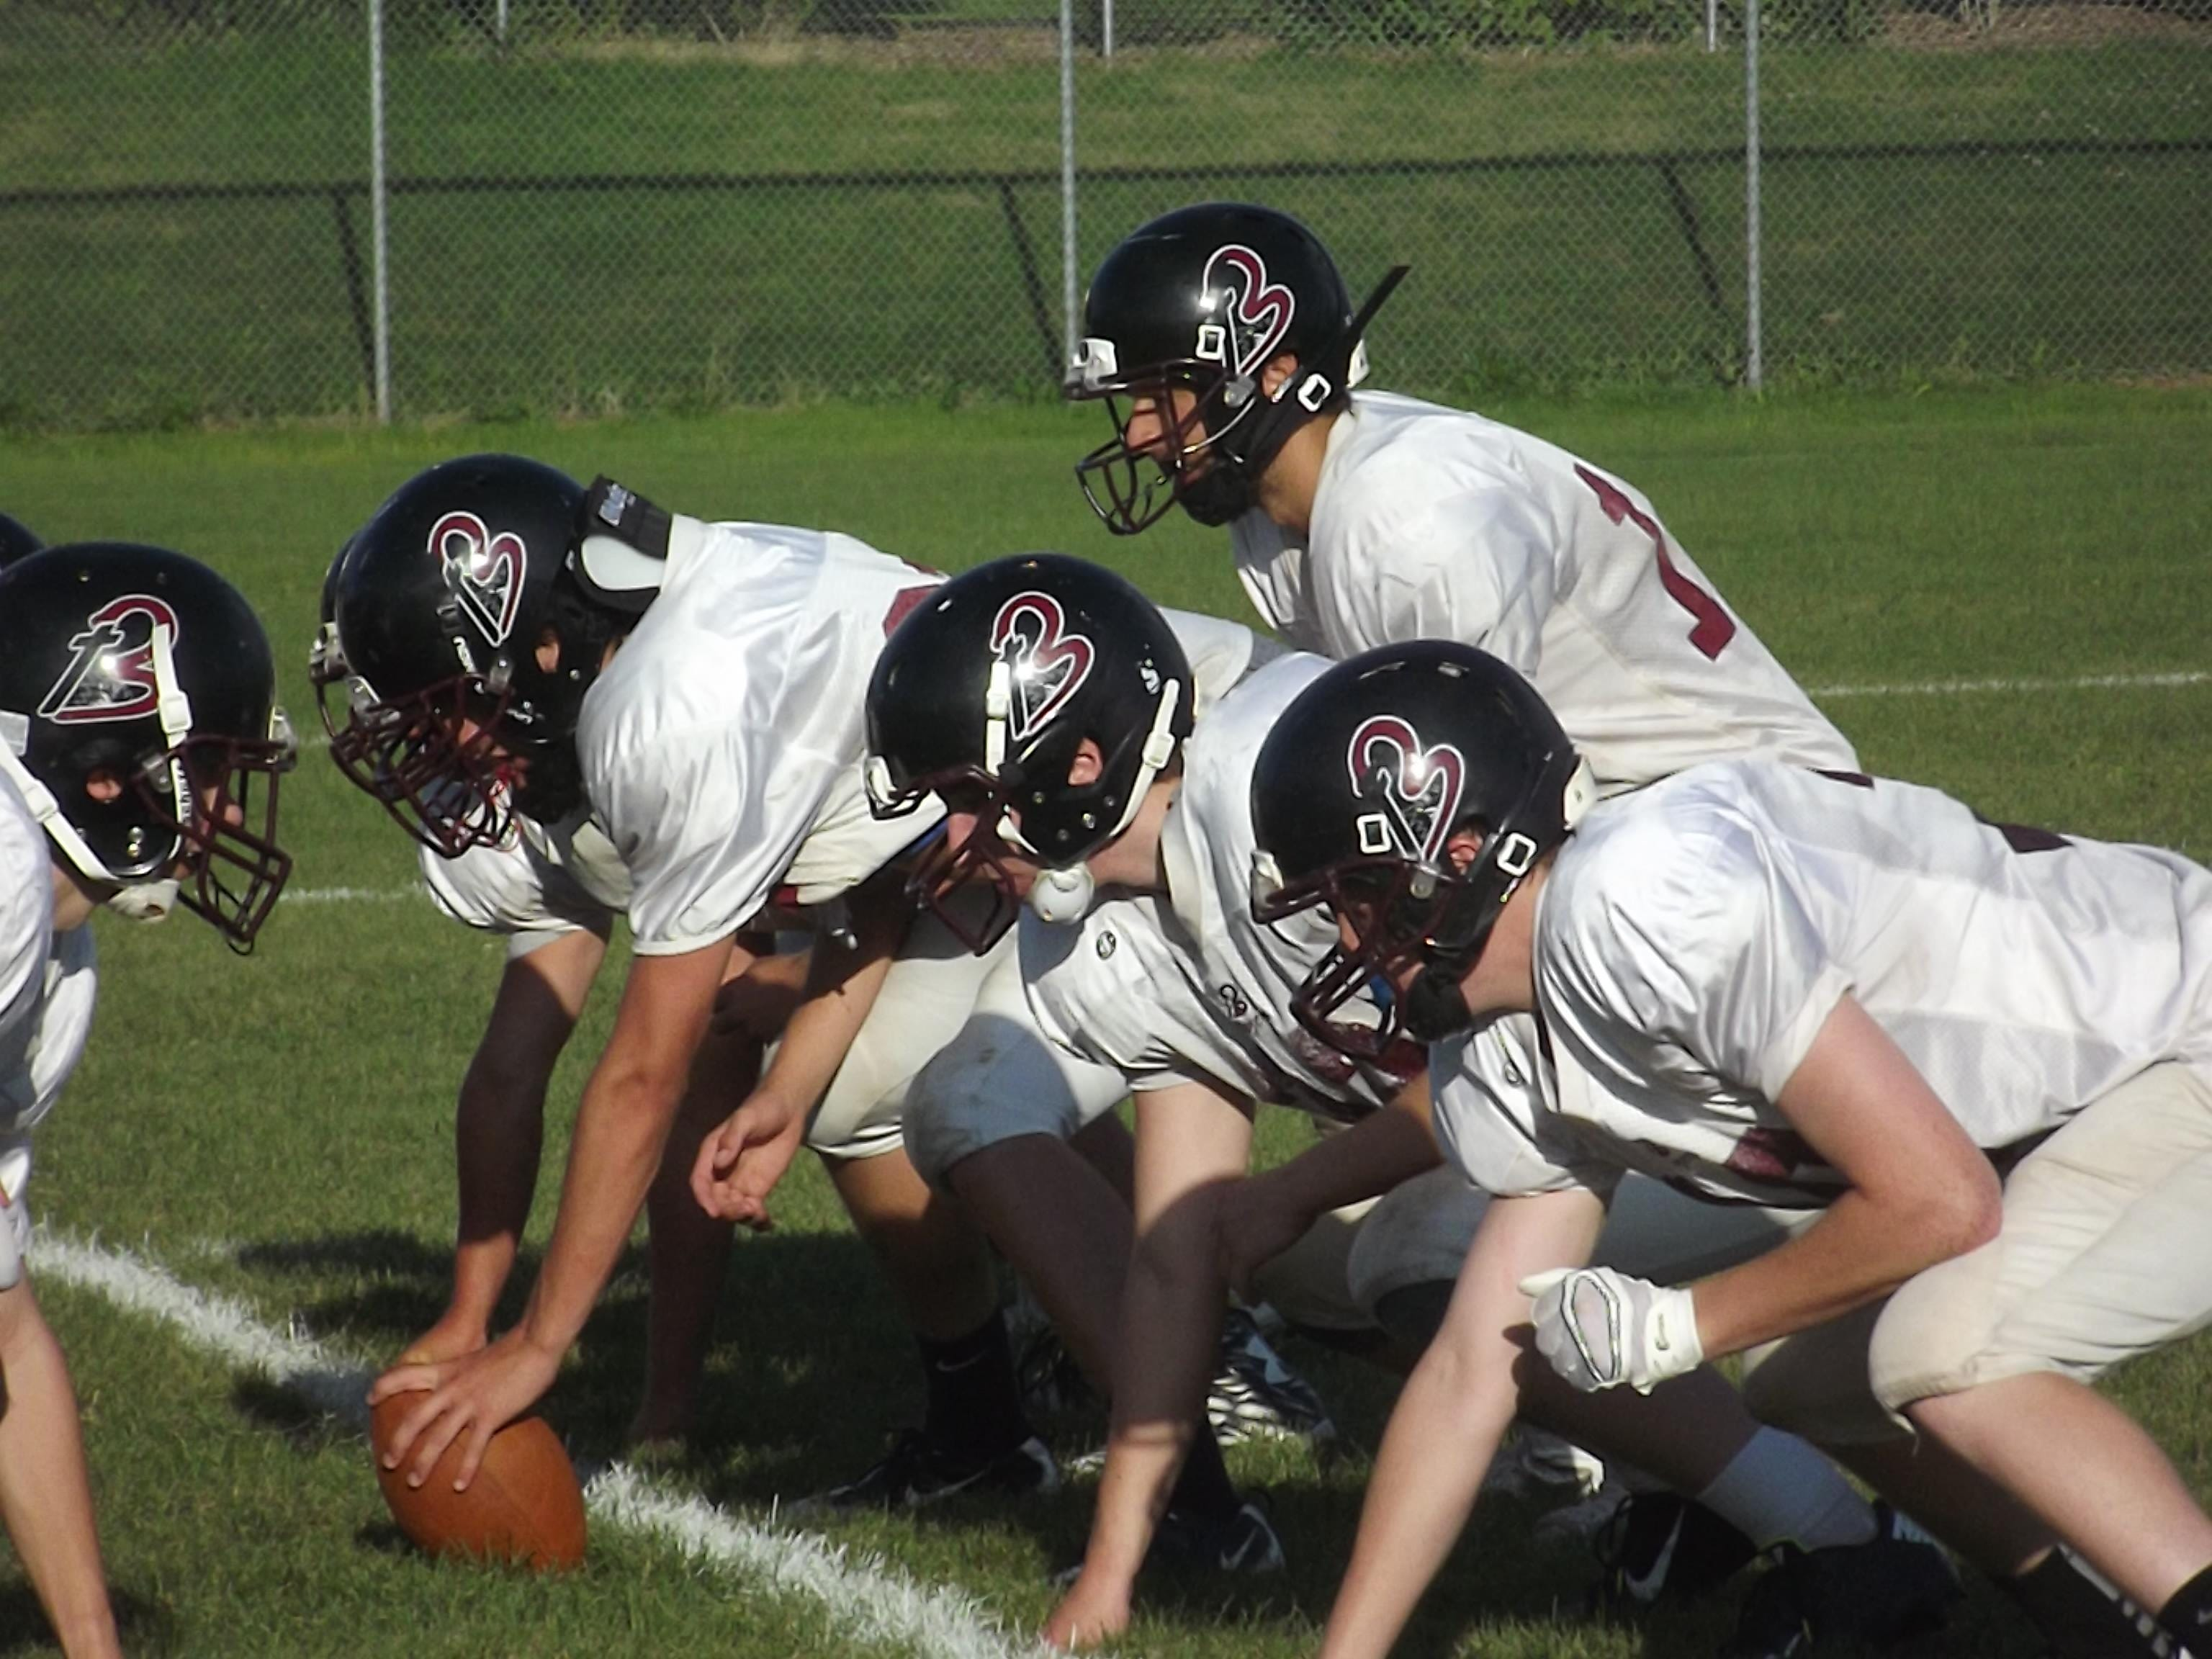 N.E.W. Lutheran James Lana gets ready to take a snap at practice Tuesday. Lana is replacing Noah Gosse at quarterback.